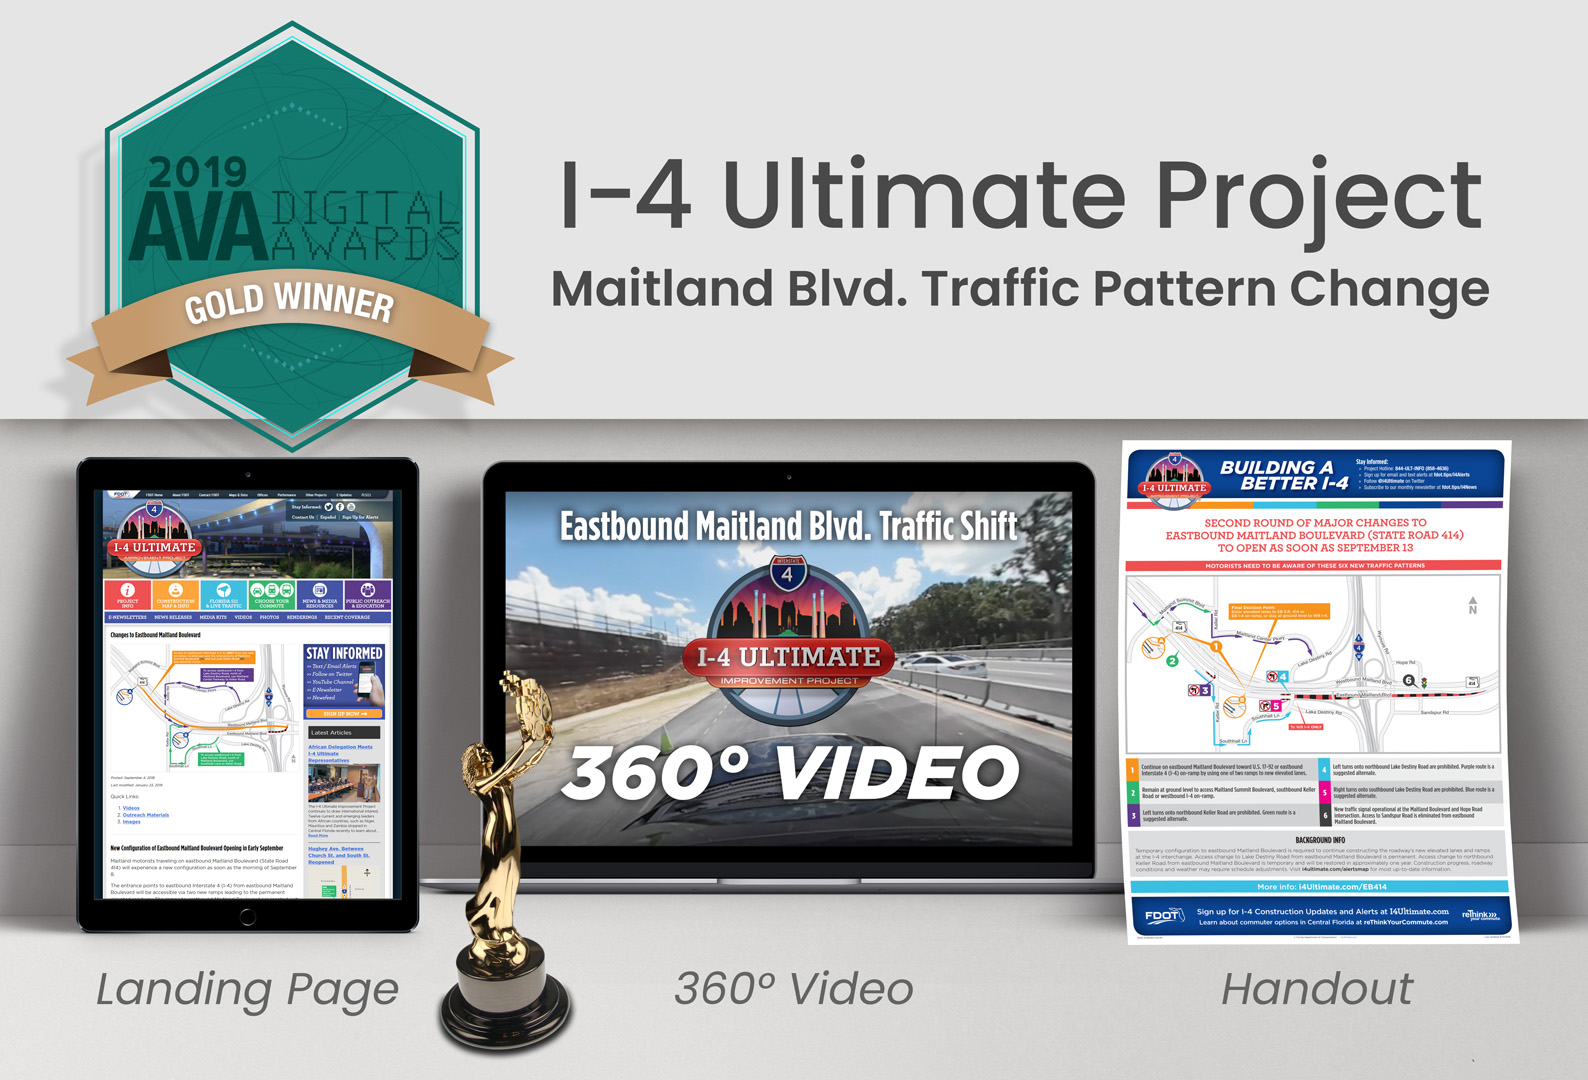 Global-5 Wins Gold Award for I-4 Ultimate Community Outreach